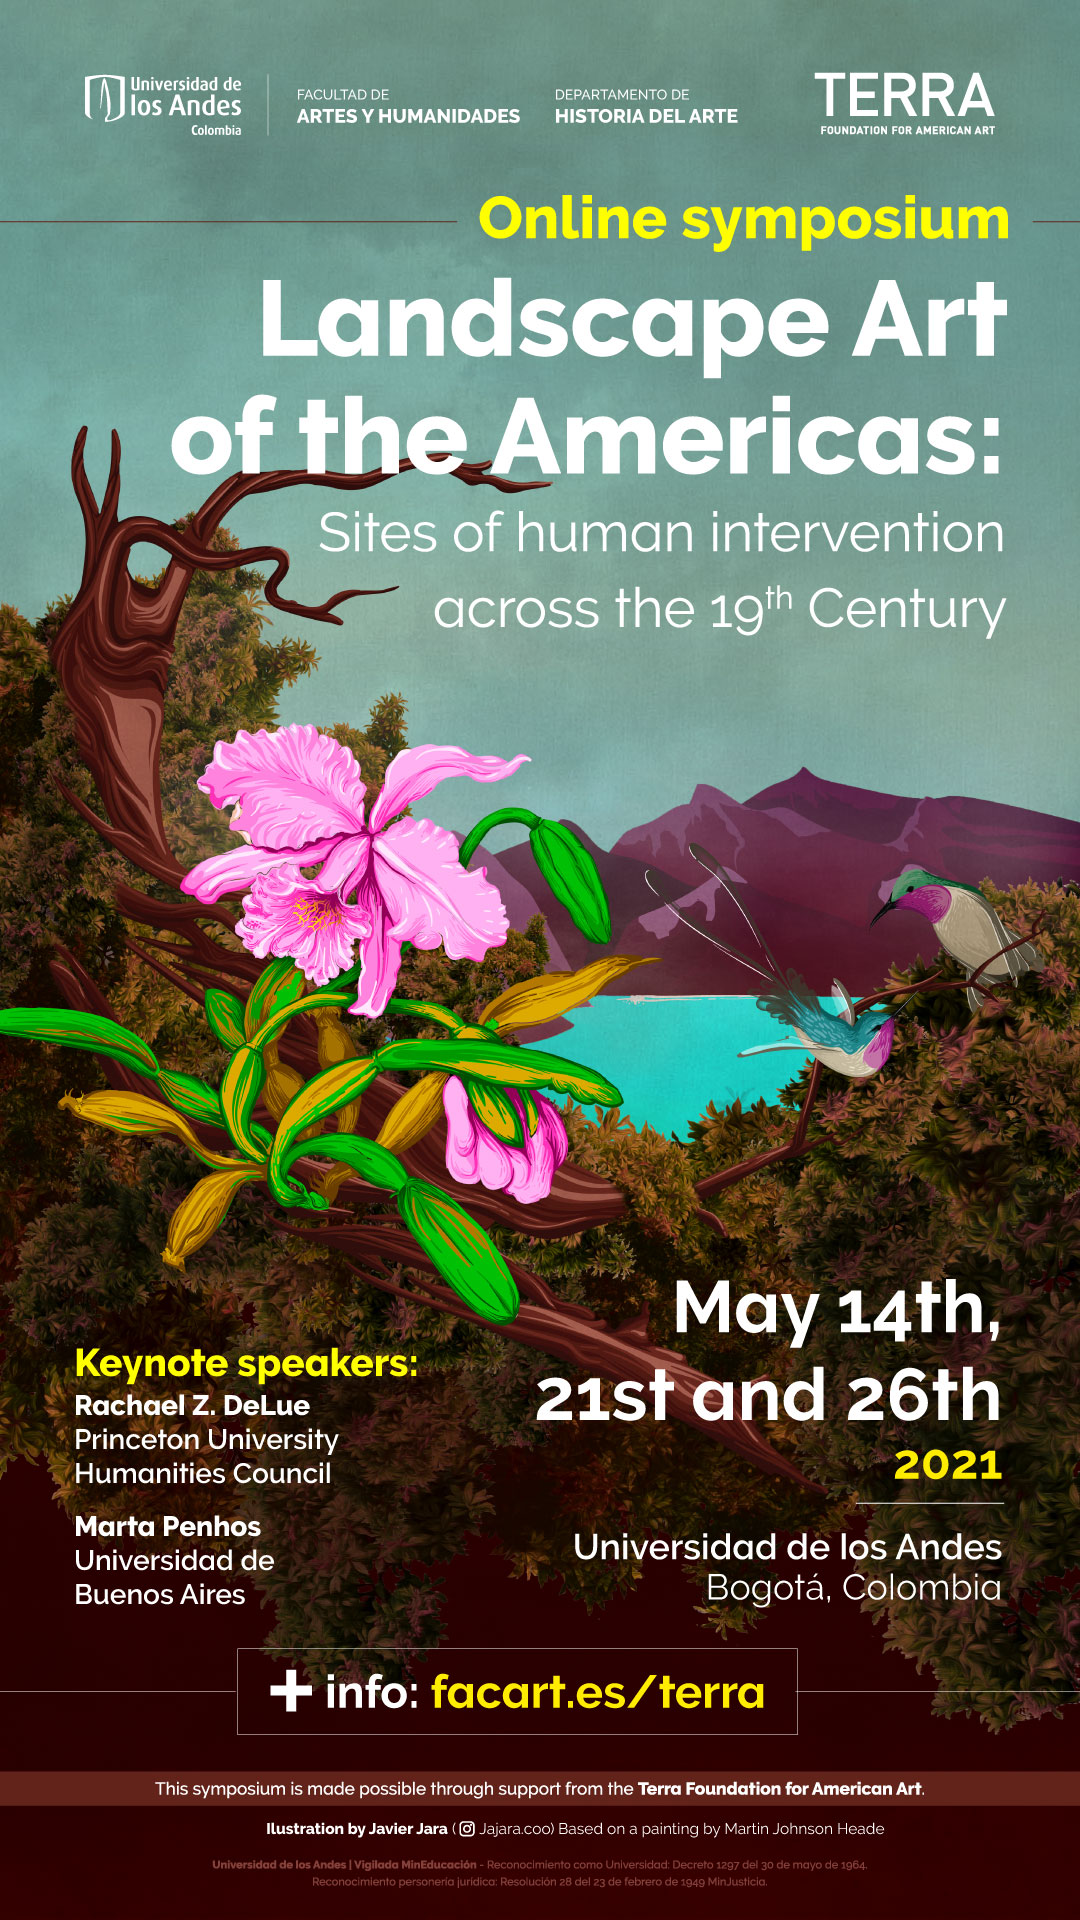 Https Historiadelarte Uniandes Edu Co En Landscape Art Of The Americas